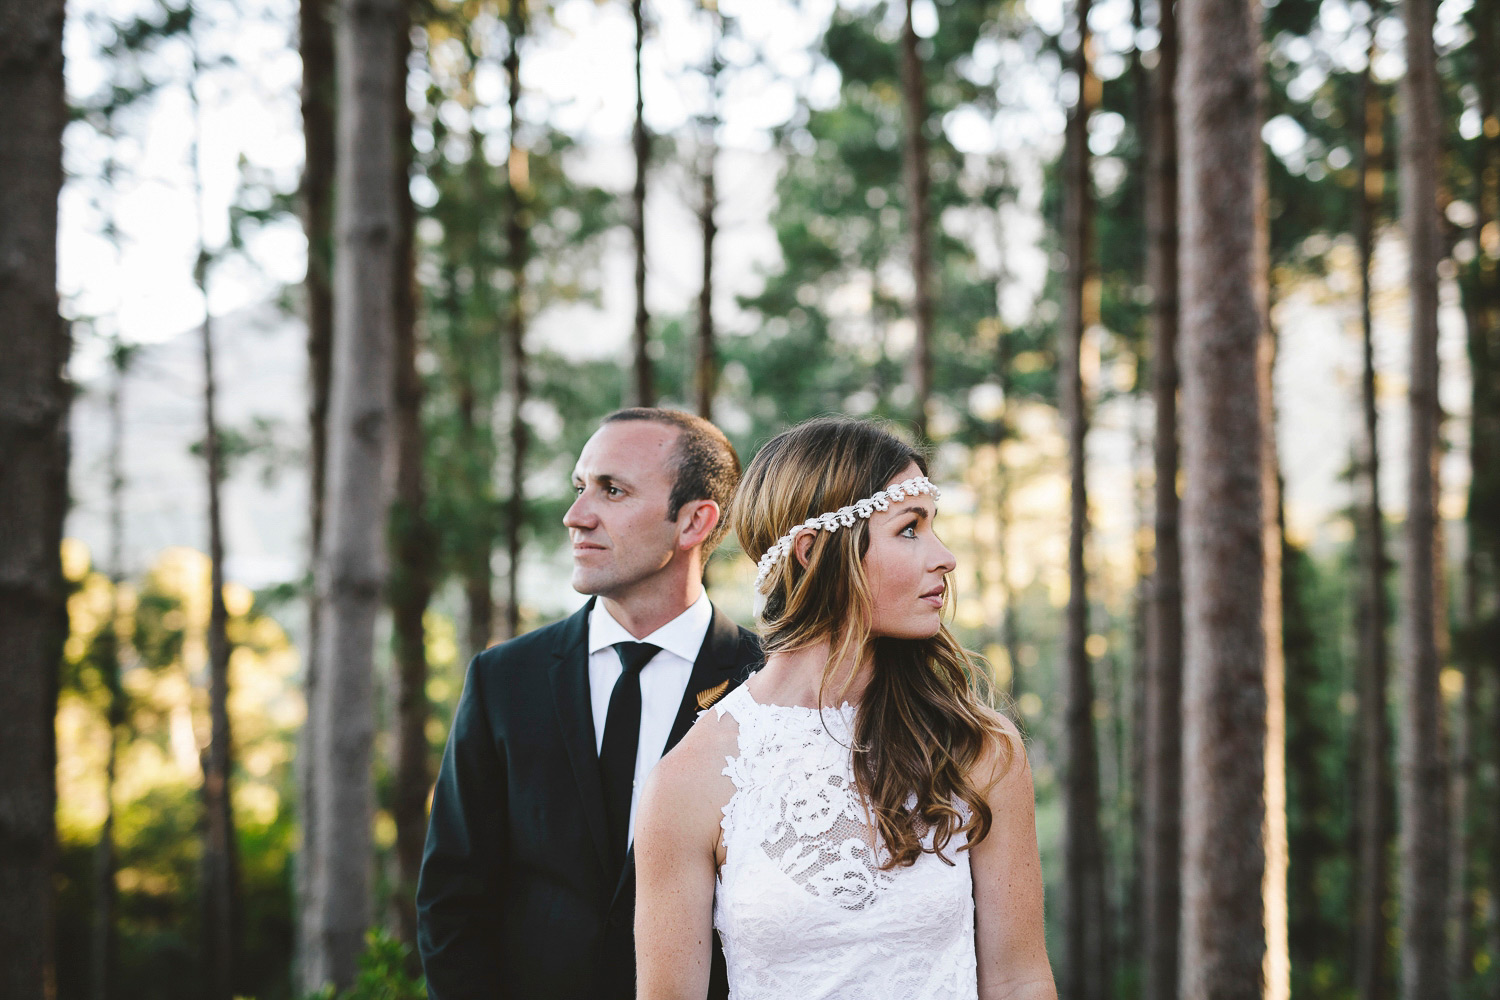 cape-town-wedding-photographer-western-cape-constansia-camilla-charlie-ray80.jpg